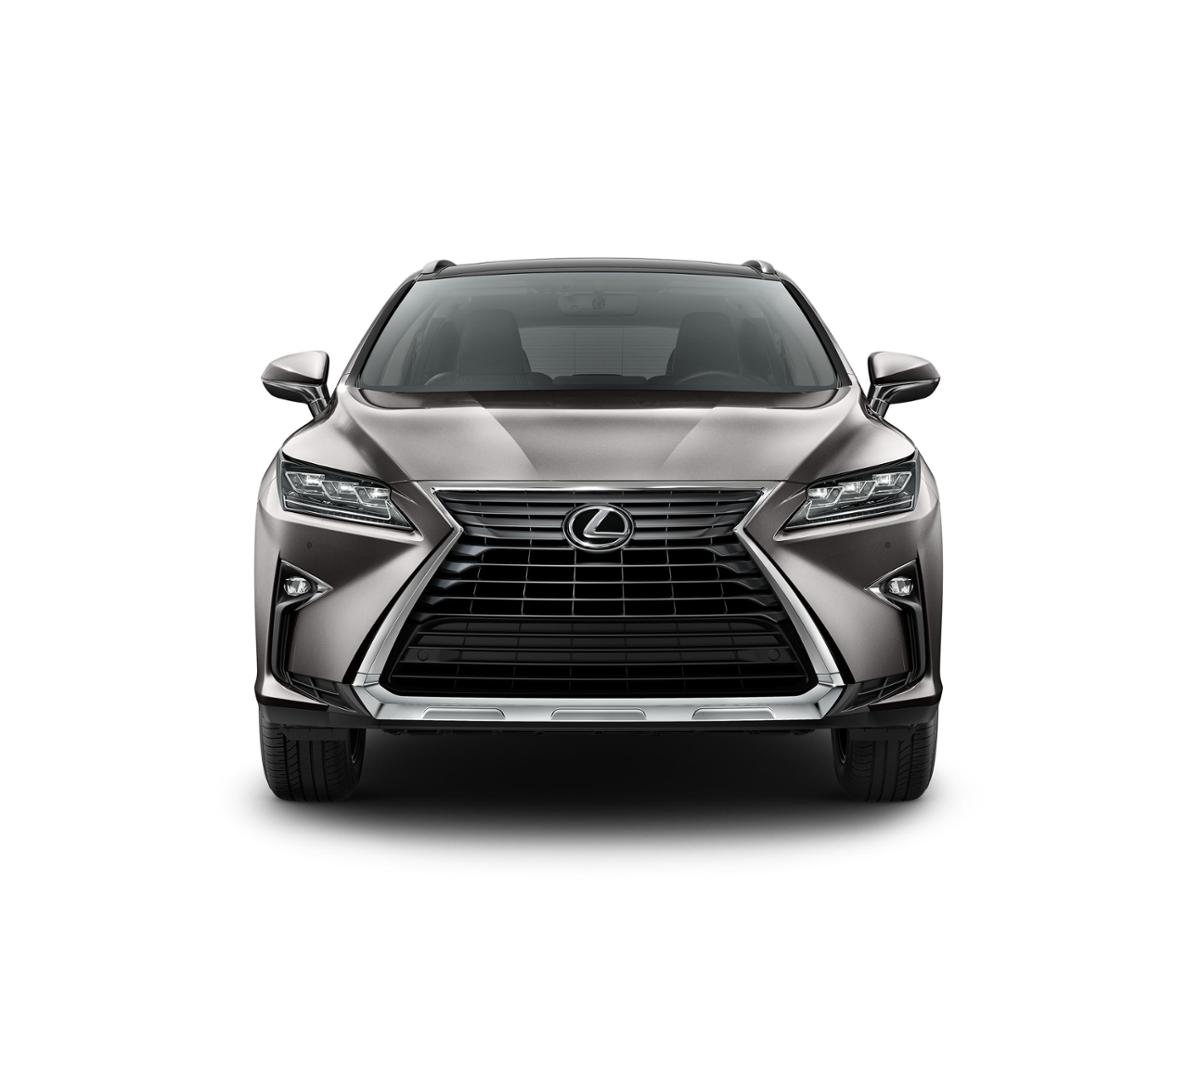 Lexus Rx 350 Lease: 2019 Lexus RX 350 For Sale In Glenview